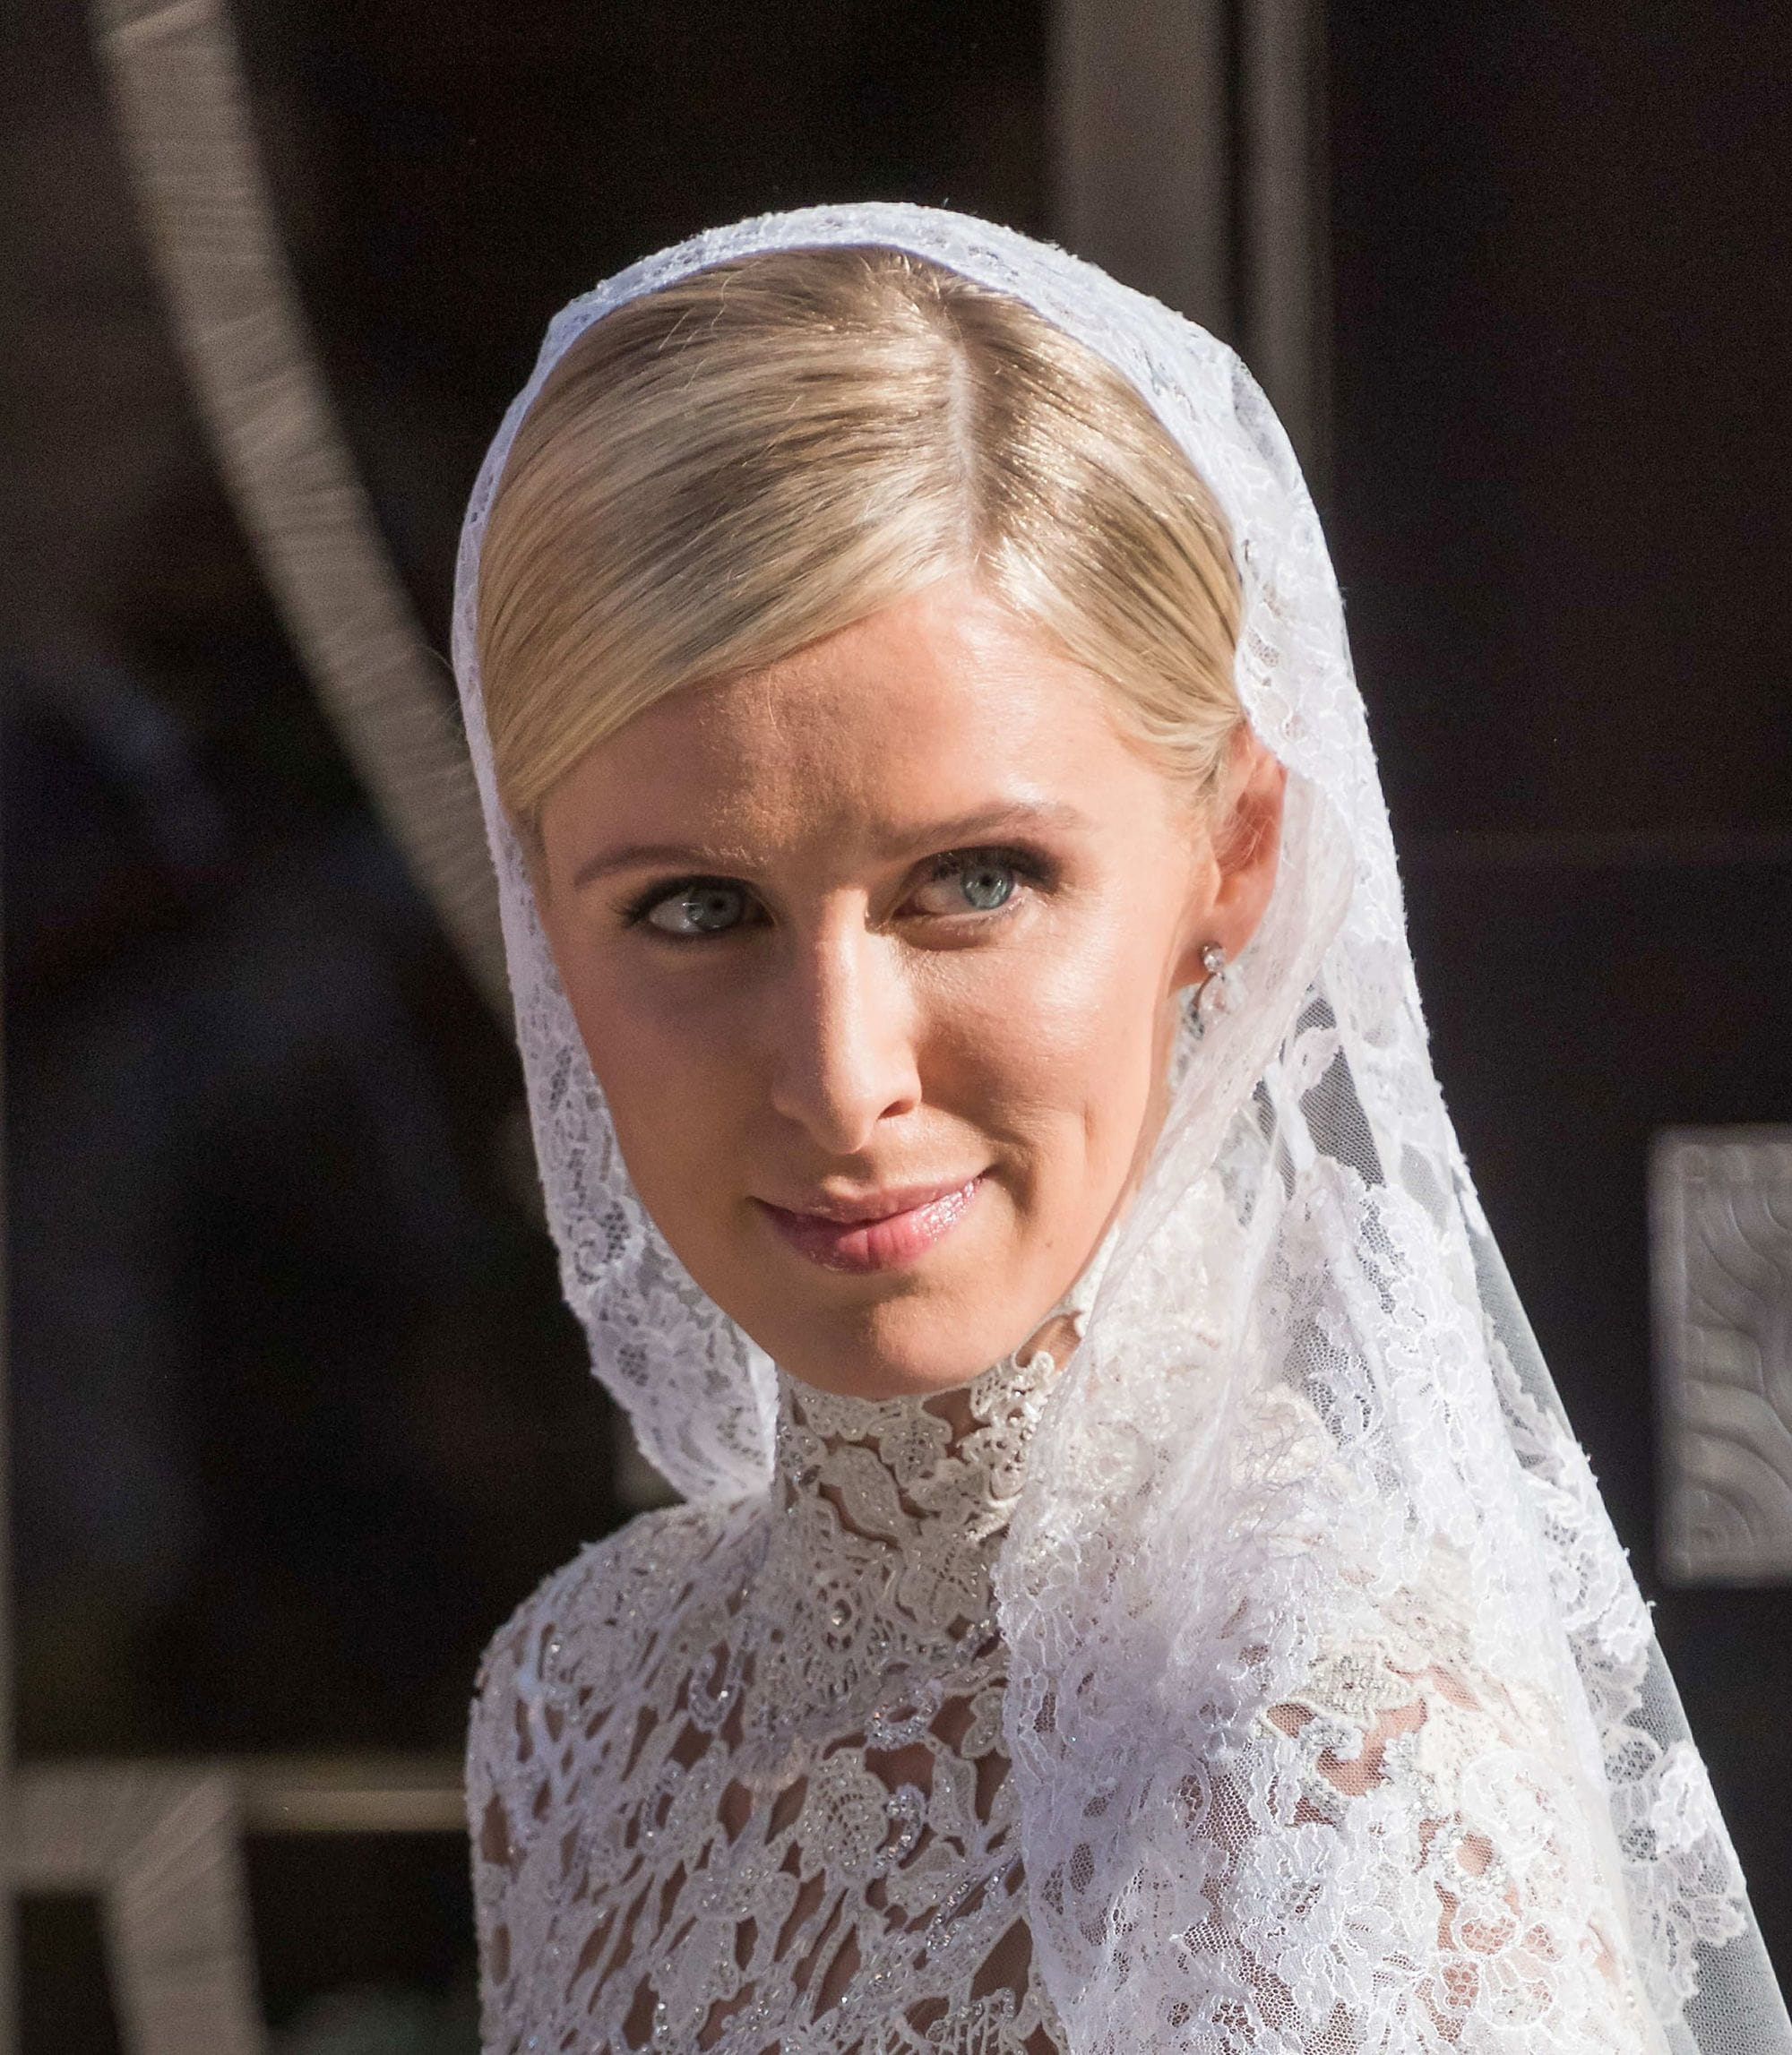 Nicky Hilton with sleek side part golden blonde hair